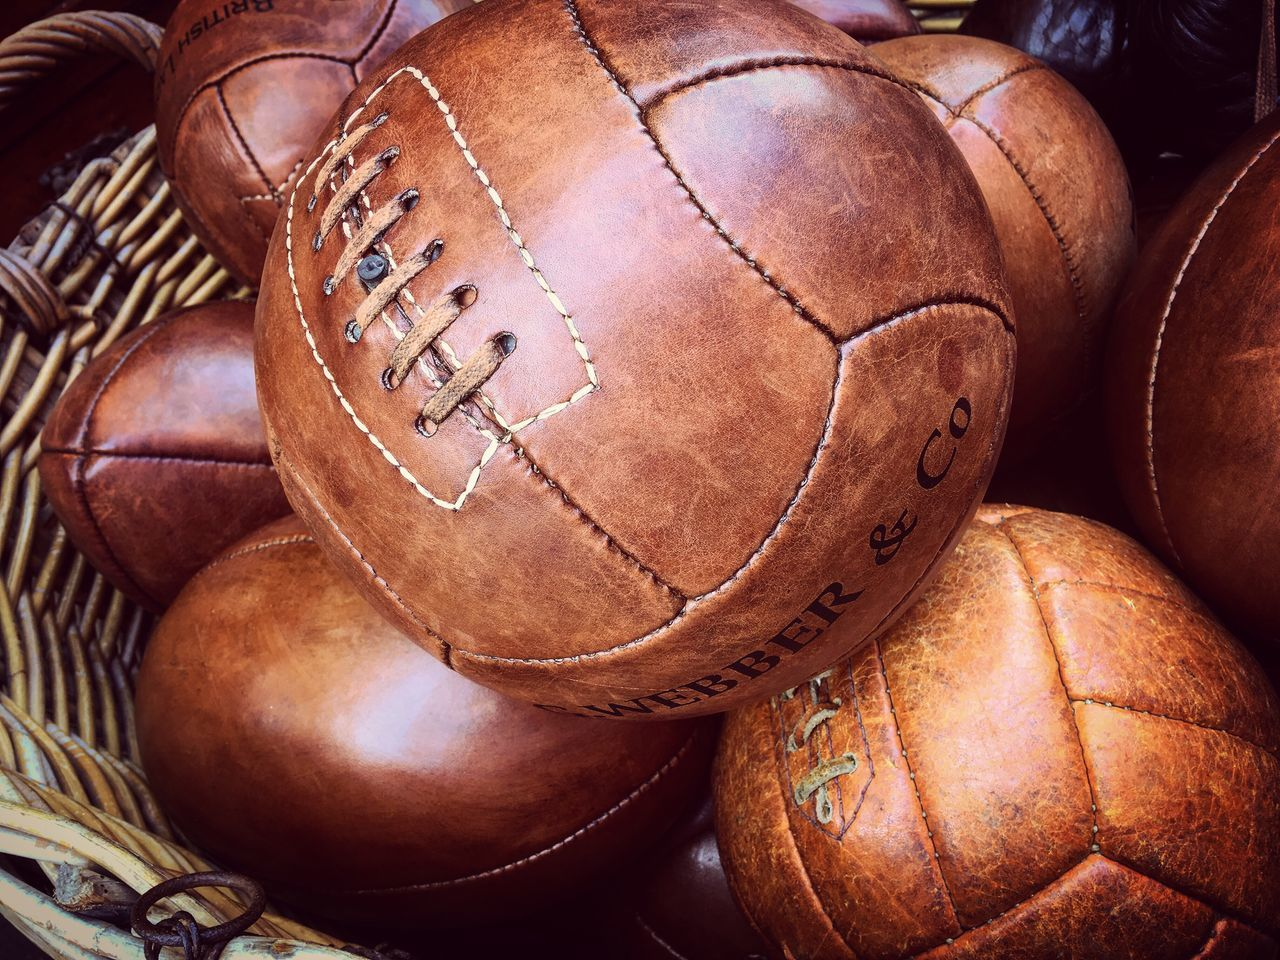 Leather Ball Balloons Leather Ball Vintage Vintage Ball Sport Brown Close-up Objects Old-fashioned Leather Art Object Object Photography Design Market Puces De Saint Ouen  Paris